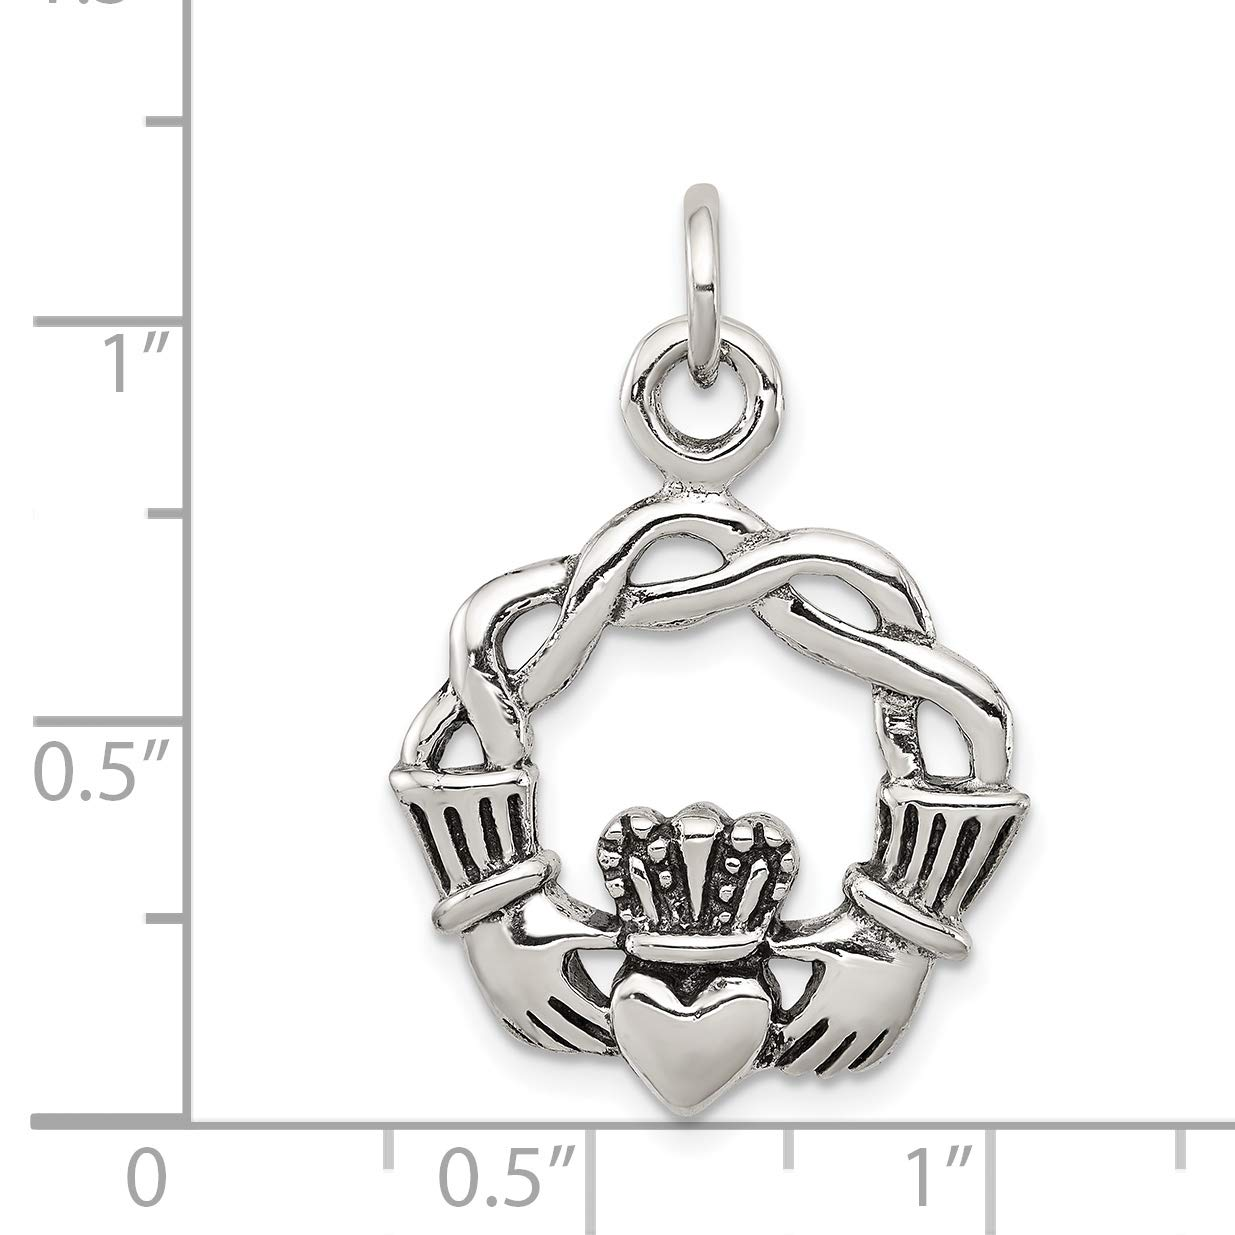 approximately 29 x 21 mm Mireval Sterling Silver Antiqued Claddagh Pendant